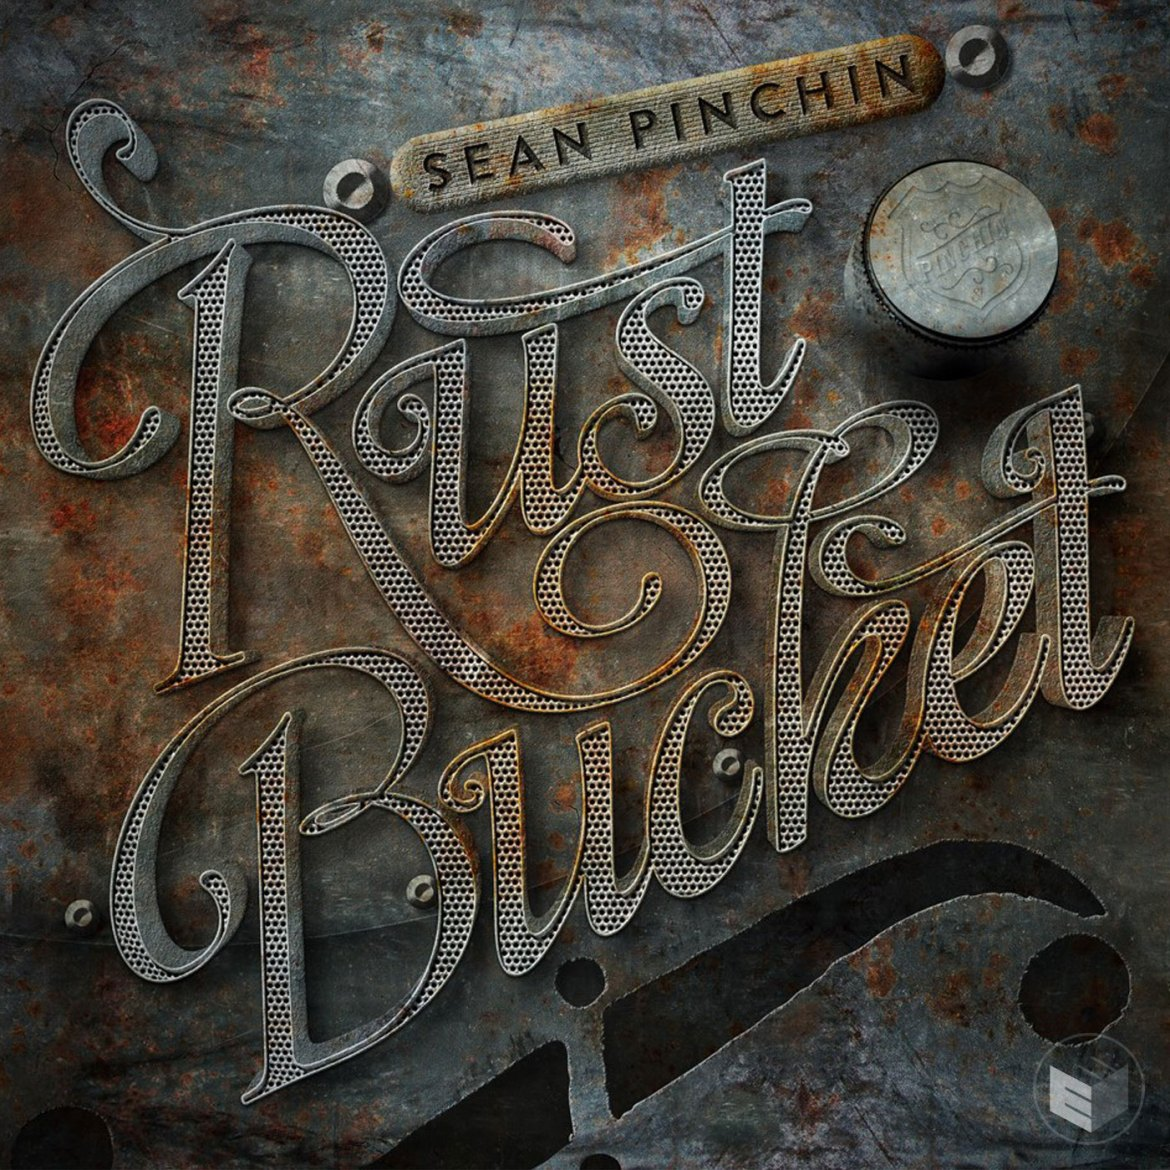 SEAN PINCHIN'S RUST BUCKET COVER